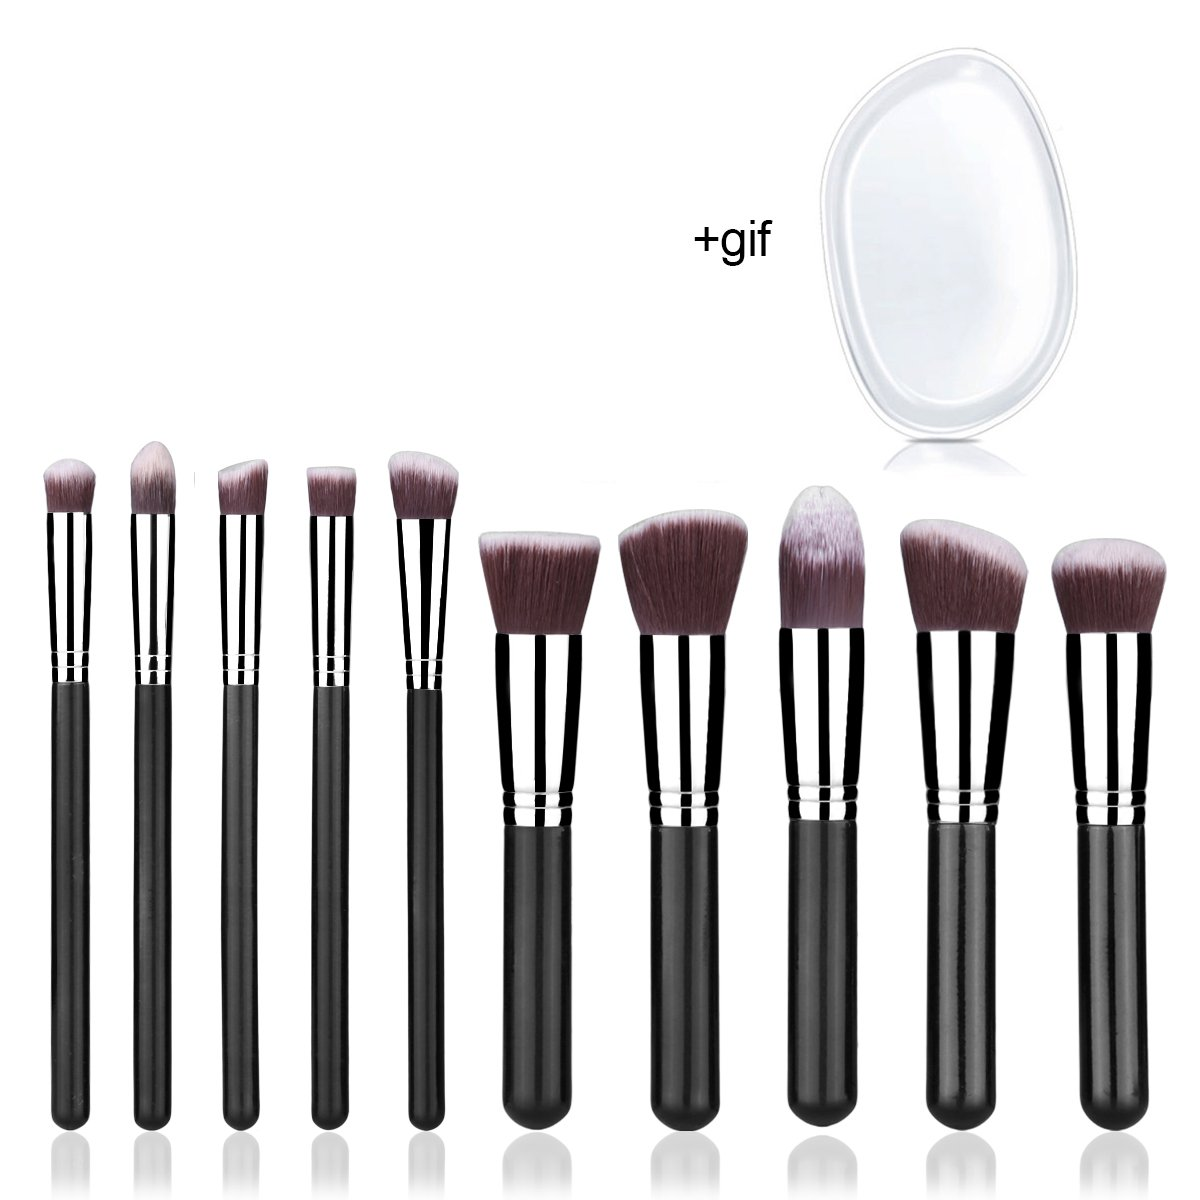 Makeup Brushes Set 3 Pcs with a Gift Silicone Sponge Fits Face Make-up Beauty Aspior